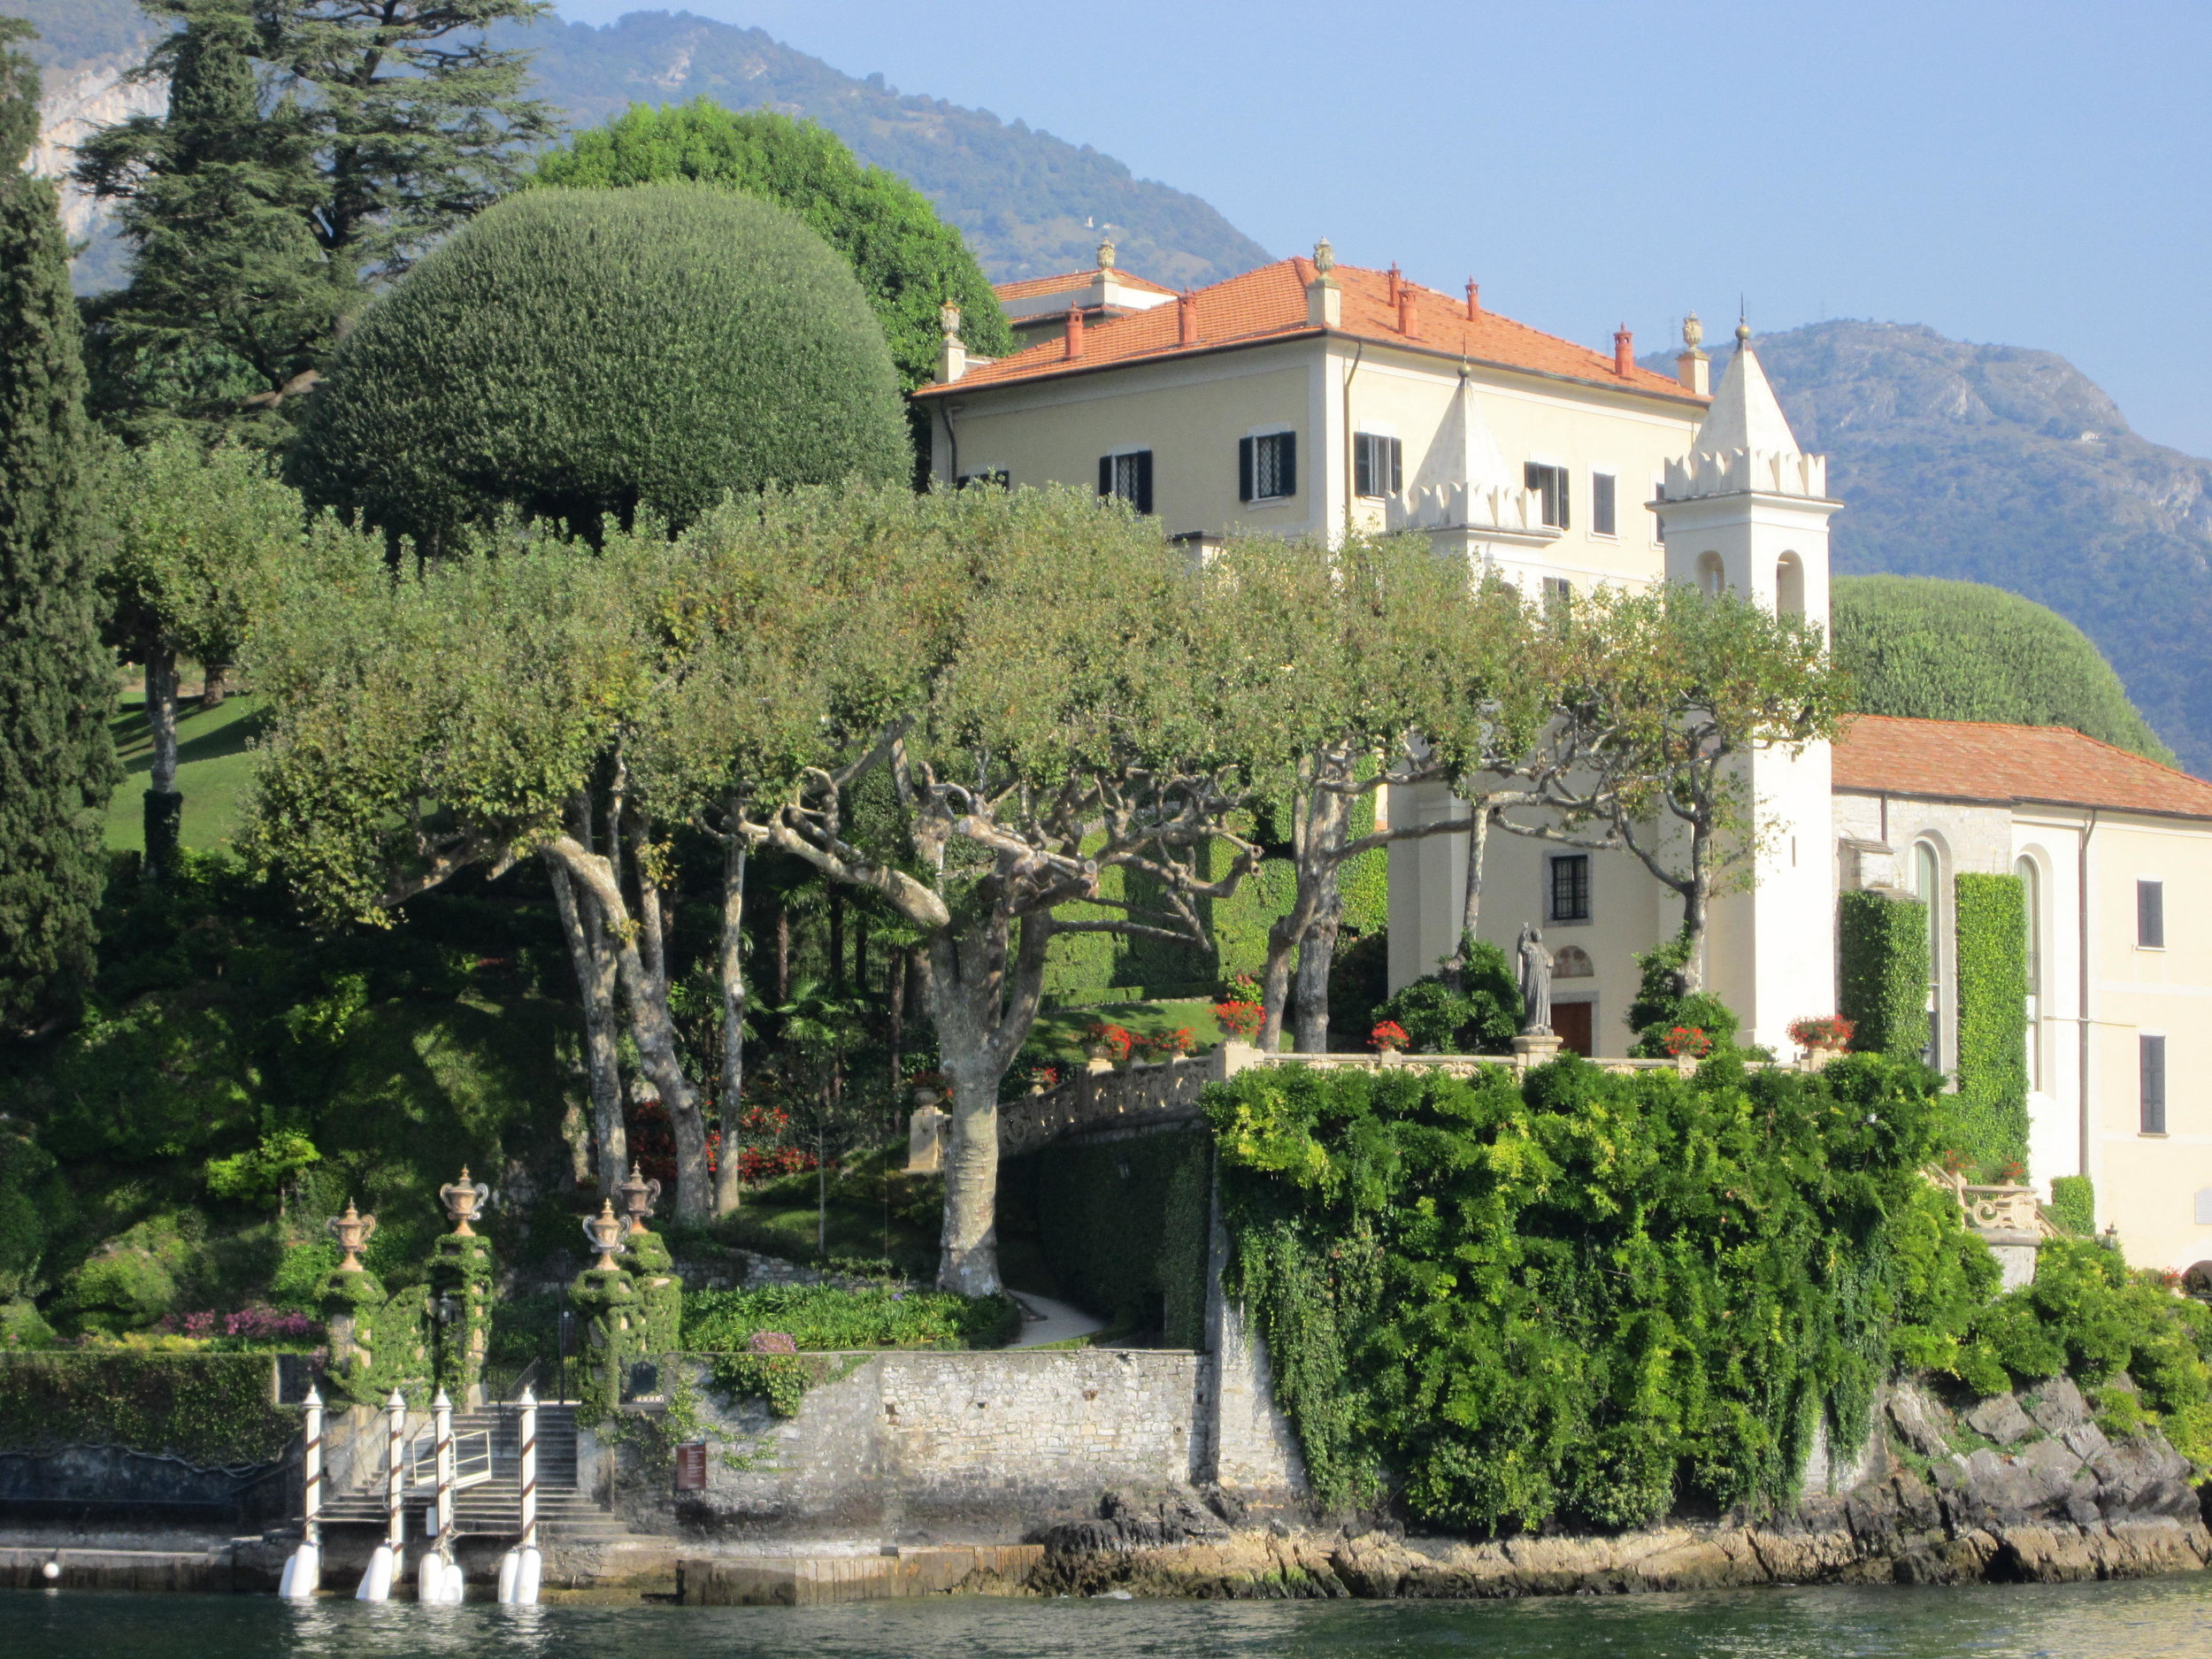 Villa Balbianello as seen when approached by motorboat. Note the boat landing, lower left.